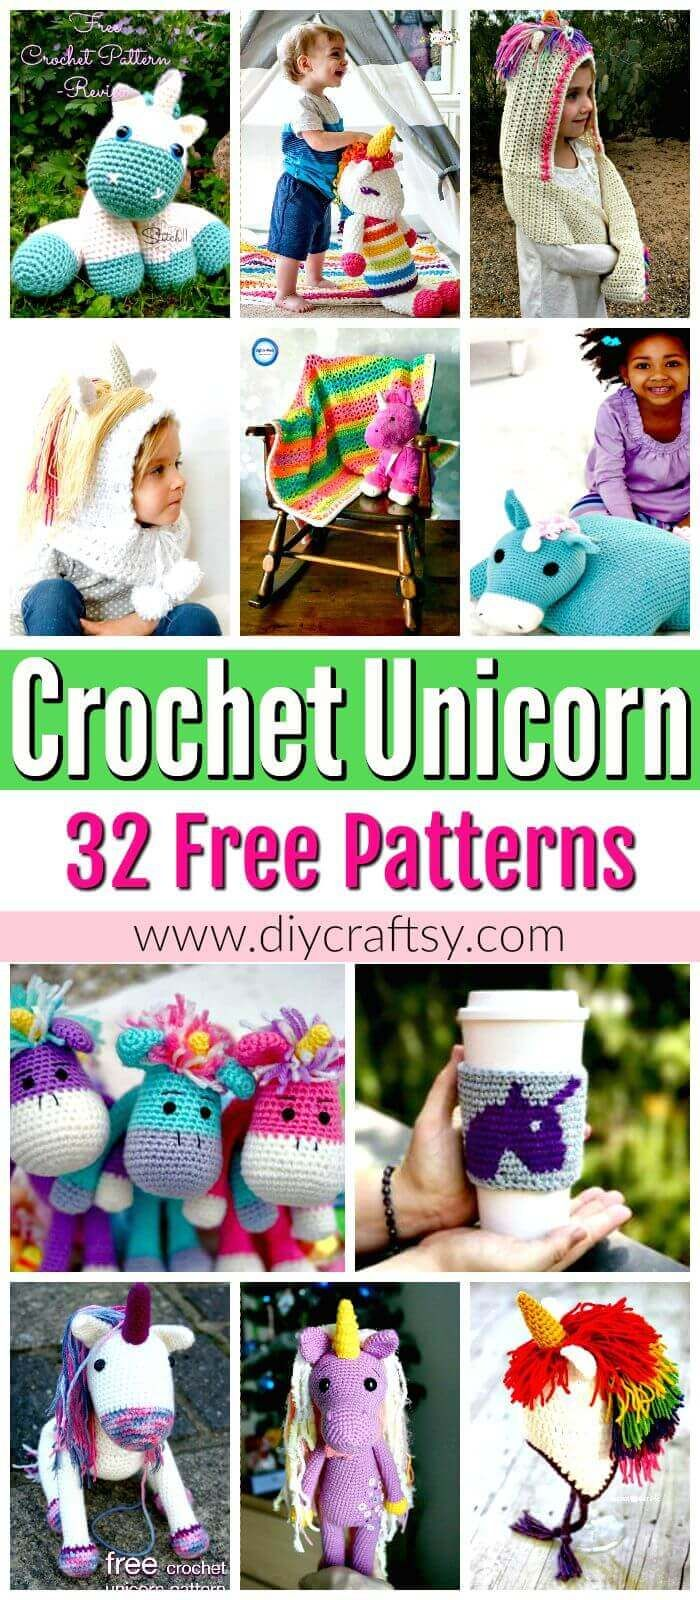 Crochet Unicorn Pattern- 32 Free Crochet Patterns - DIY & Crafts